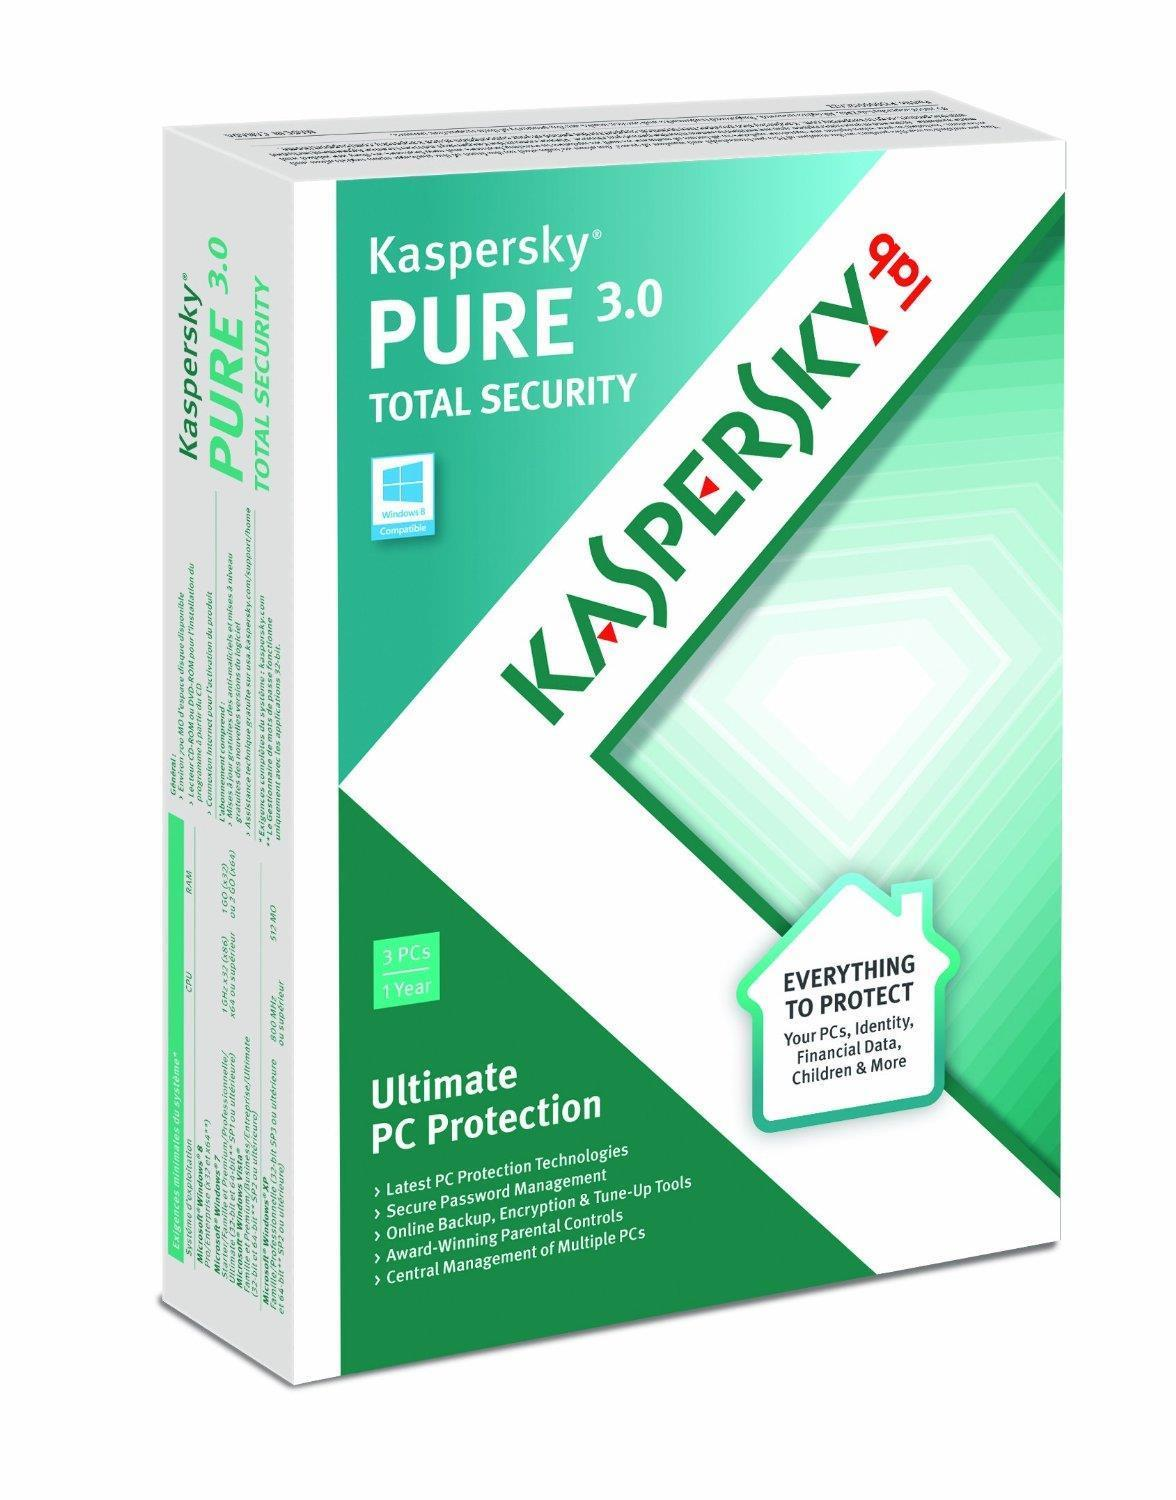 Kaspersky Pure 3.0 Total Security DVD